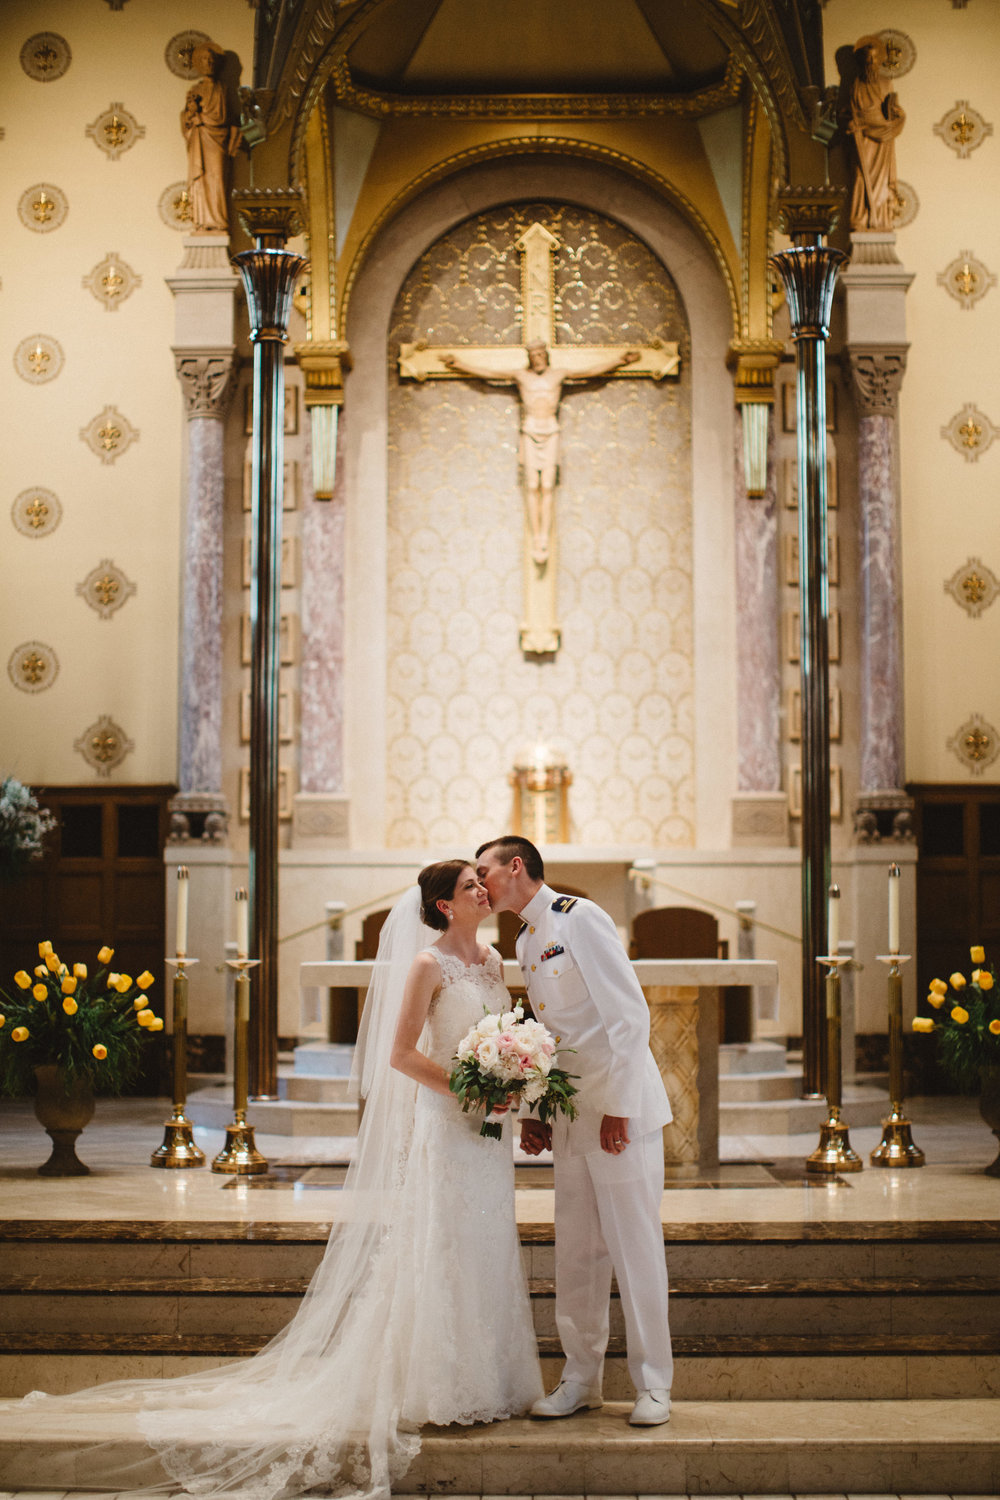 Caroline and Brad's ceremony was held at St. Charles Borromeo Church.